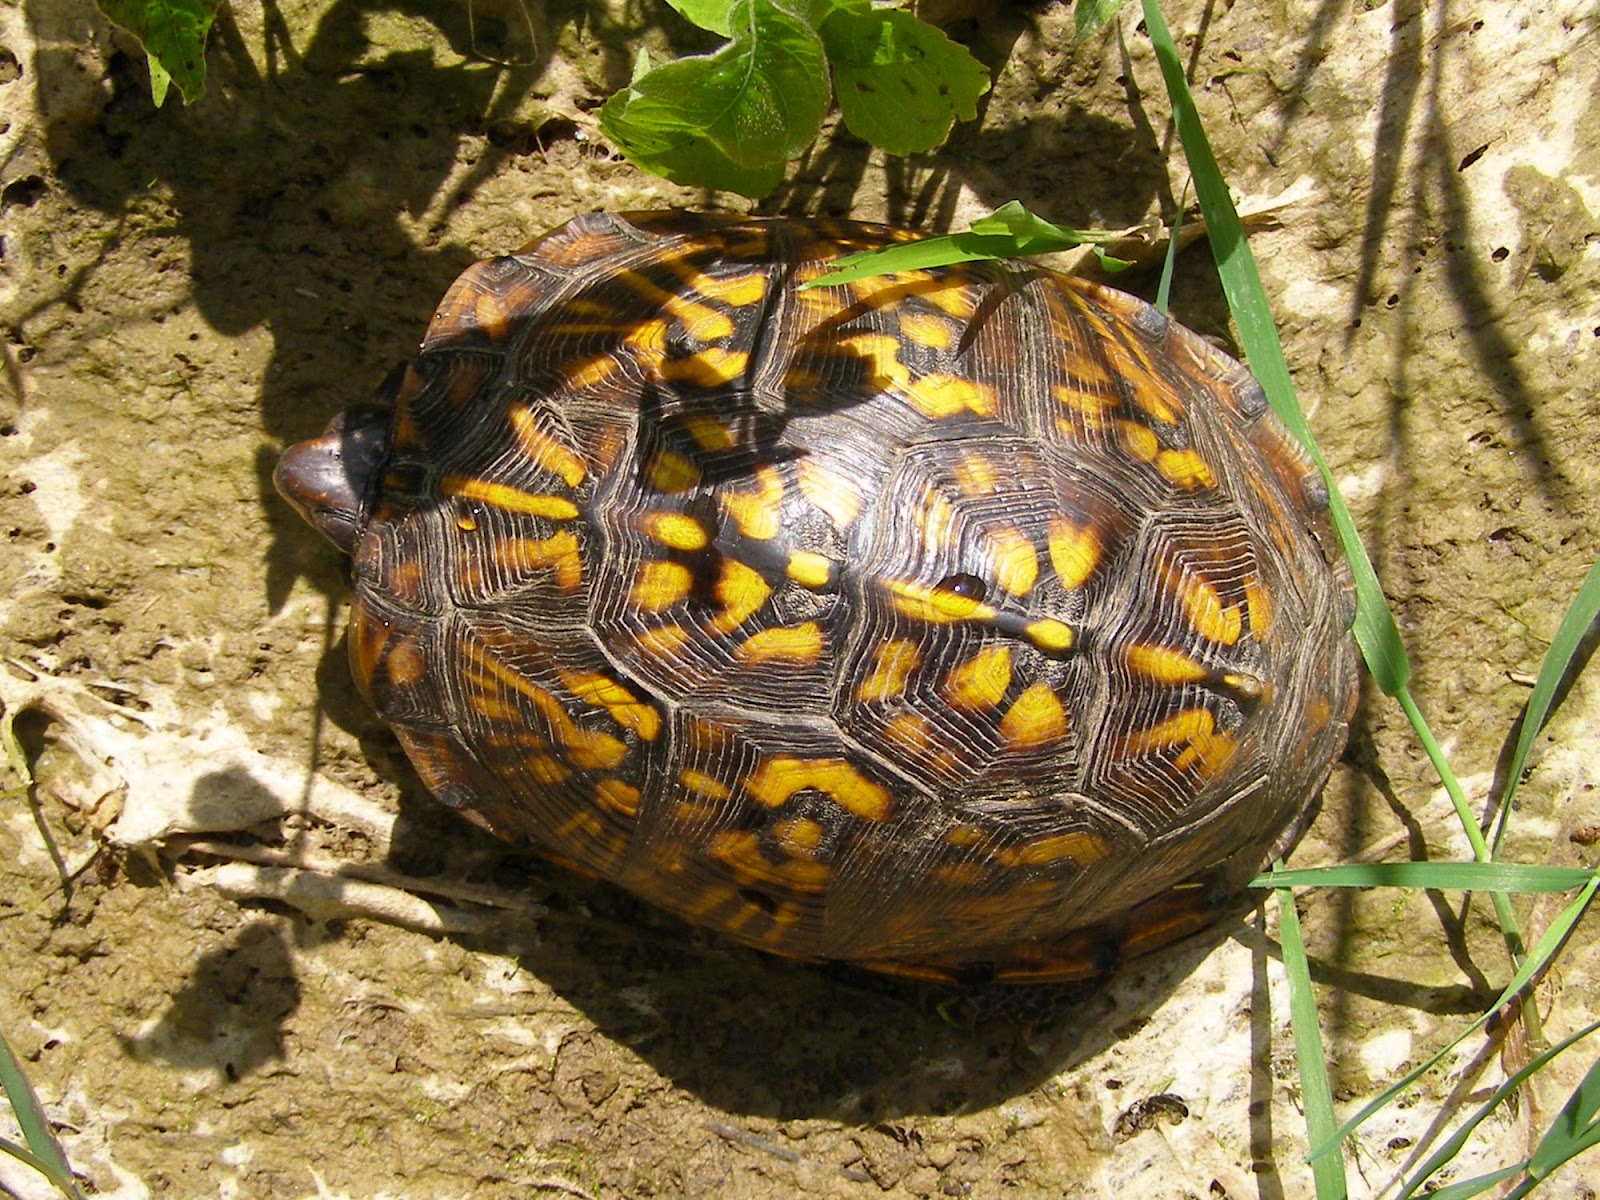 Different Types Of Water Turtles Turtles change their patterns